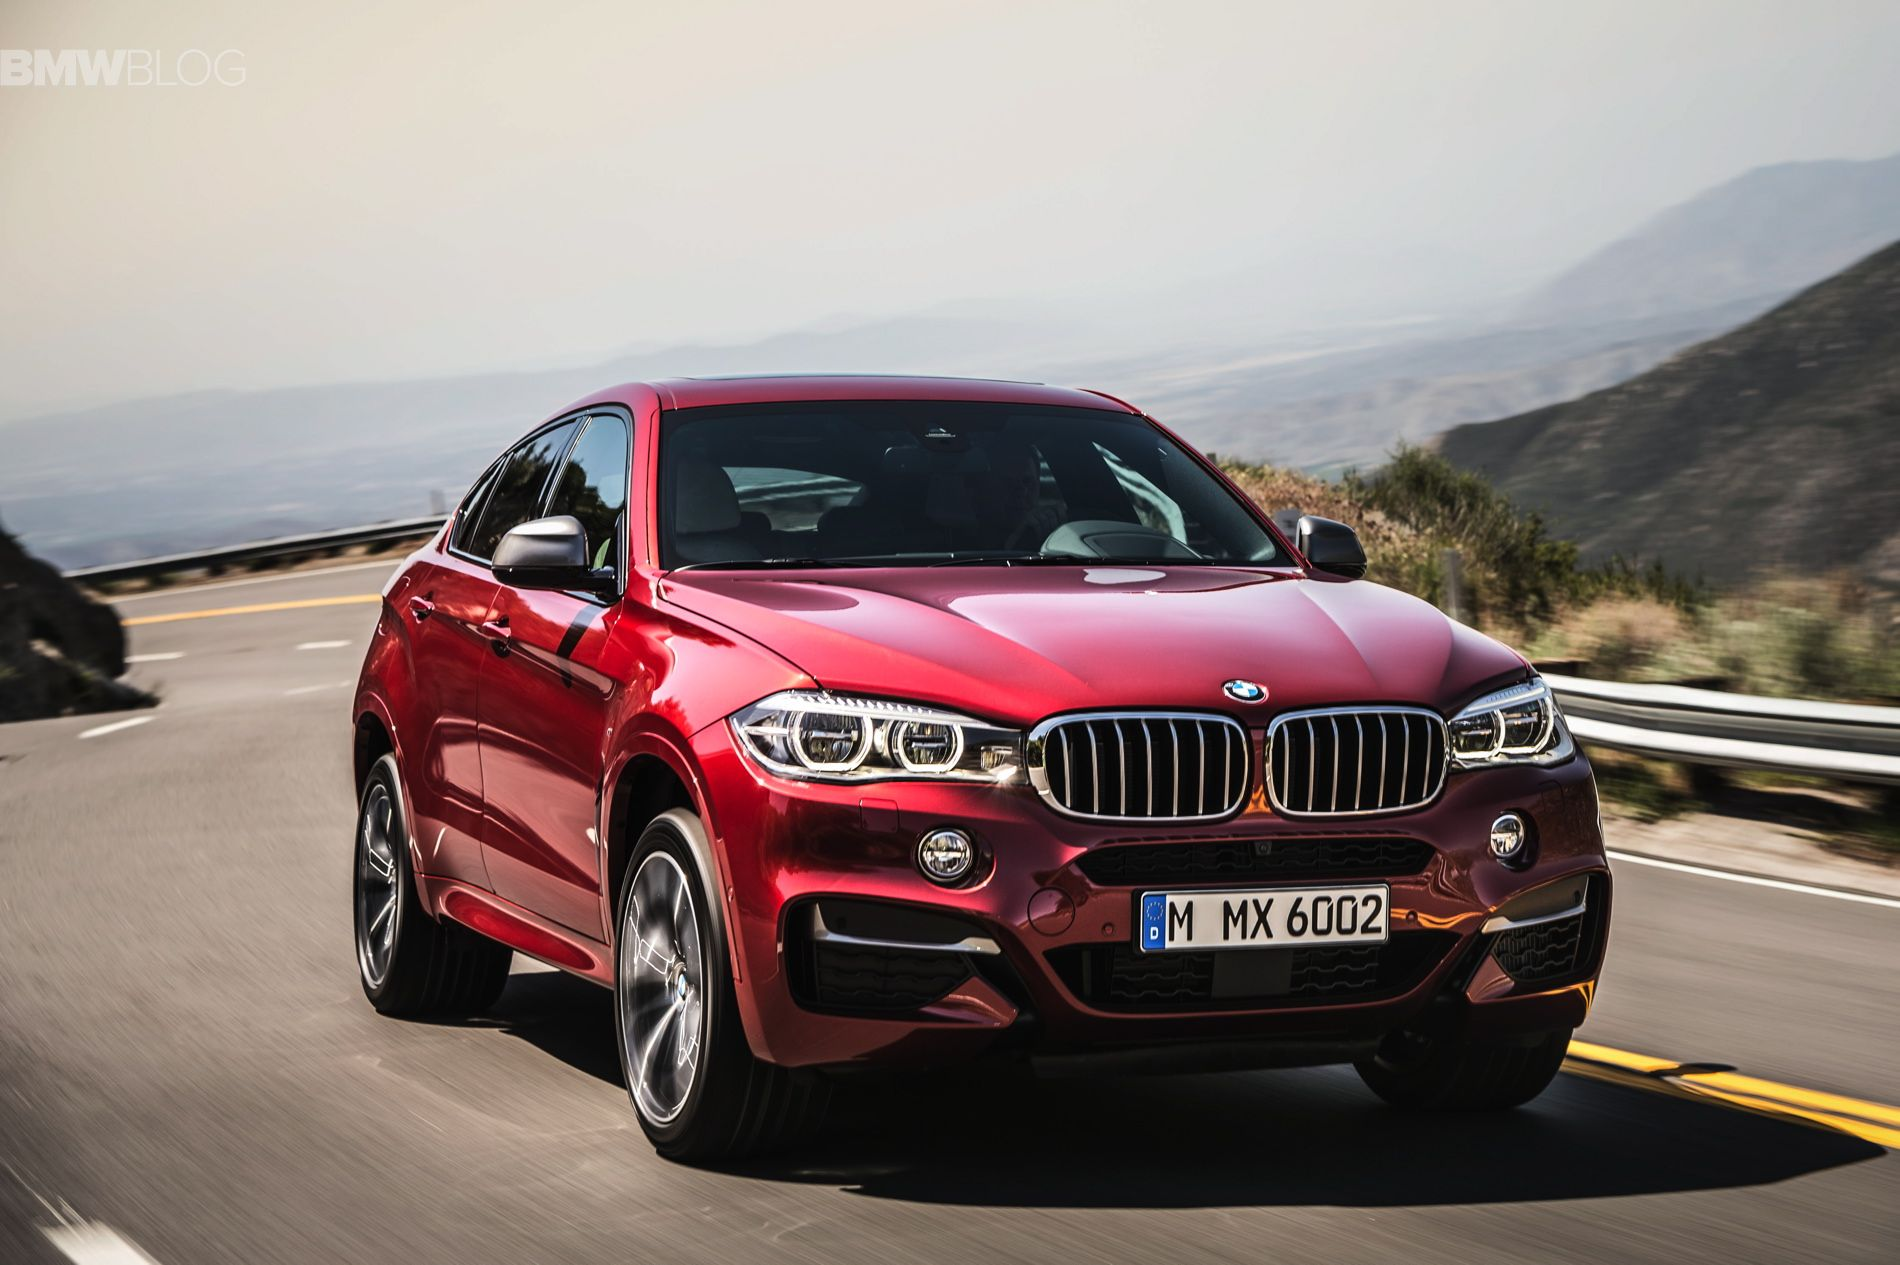 The New 2015 Bmw X6 Bmw X6 Bmw Bmw X7